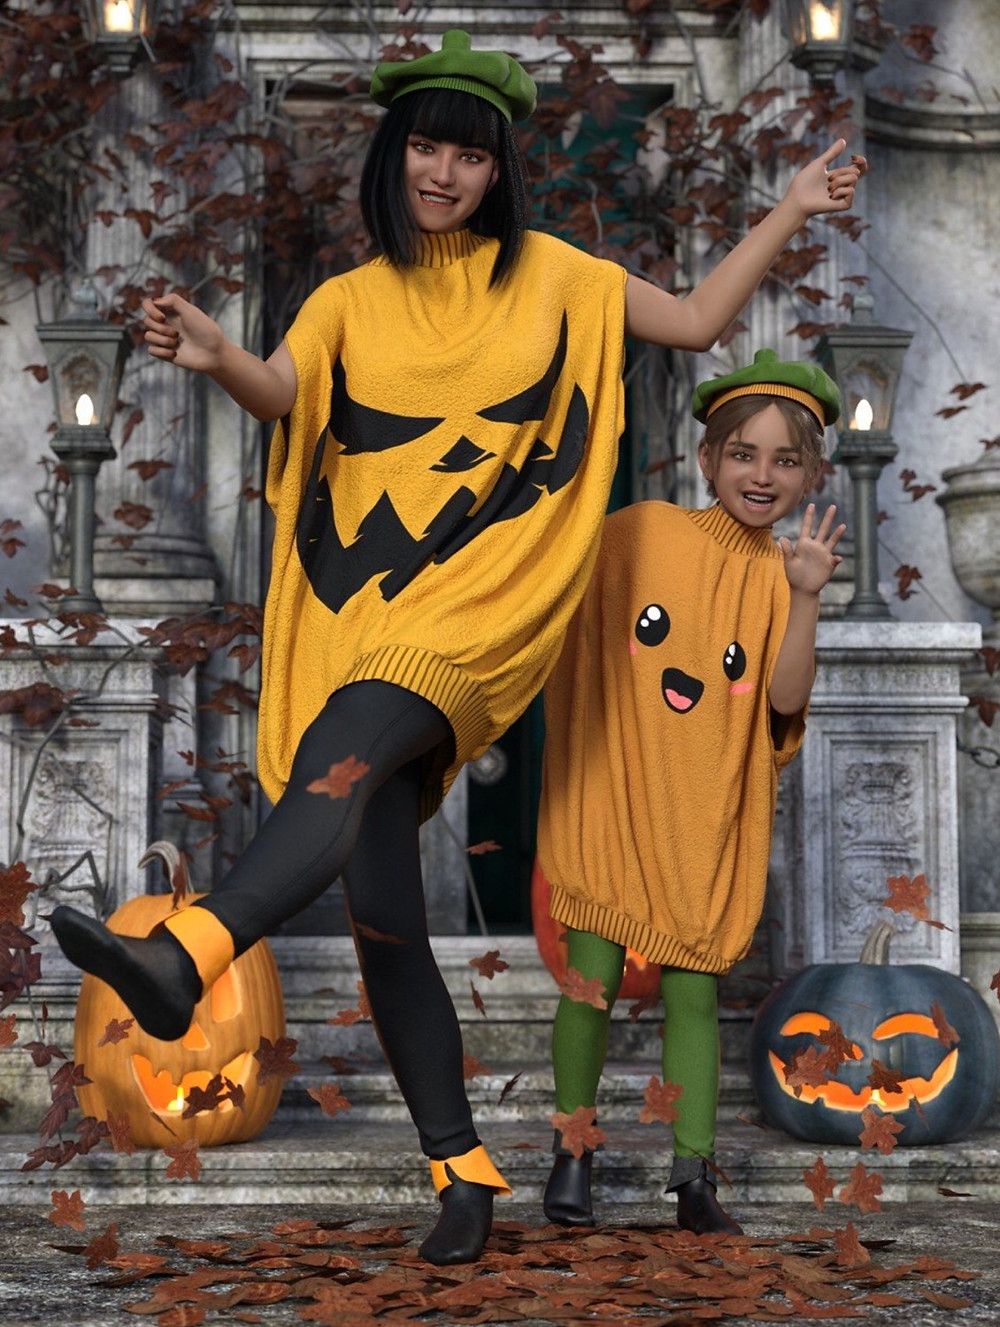 Image shows a woman and young child dressed in oversized pumpkin-style jumpers, ready to go trick or treating. Both are wearing the dForce Punkin Outfit for Genesis 8 Female(s) from Moonscape Graphics for Daz3D.